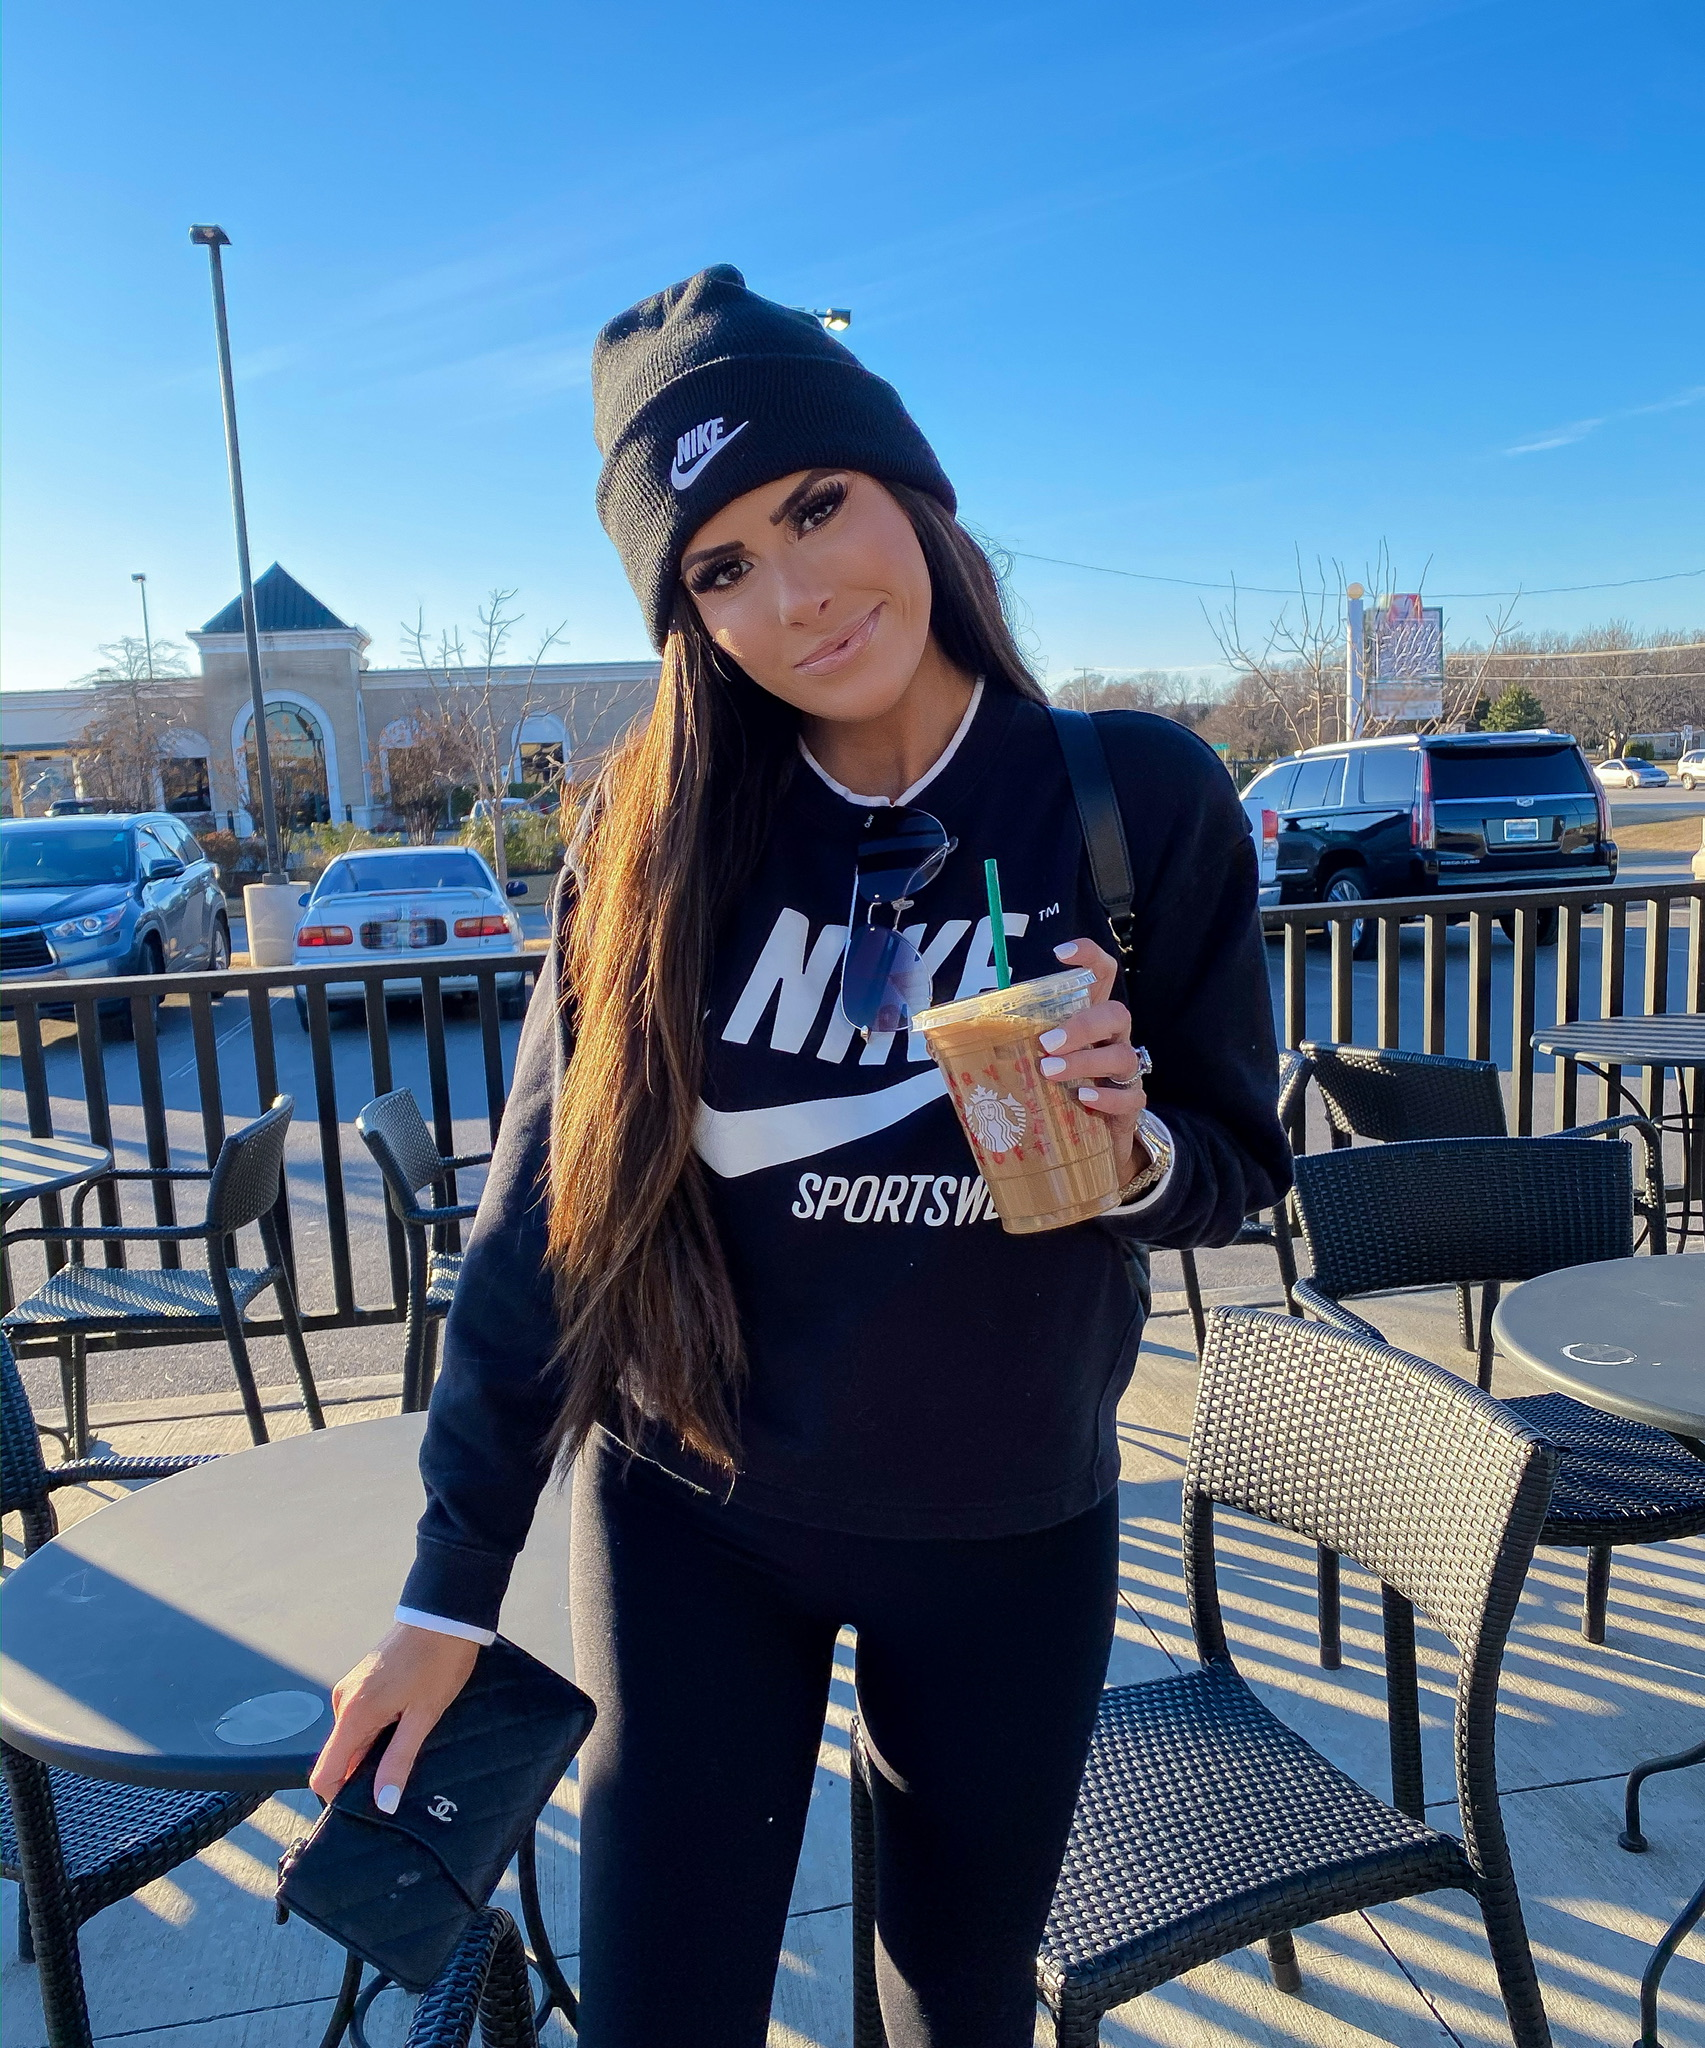 Instagram Recap by popular US fashion blog, The Sweetest Thing: image of a woman wearing a Nordstrom Control Top Leggings COMMANDO, Nordstrom Sportswear Essential Loose Fit Fleece Sweatshirt NIKE, Nordstrom High Key Mini 59mm Rimless Aviator Sunglasses QUAY AUSTRALIA.